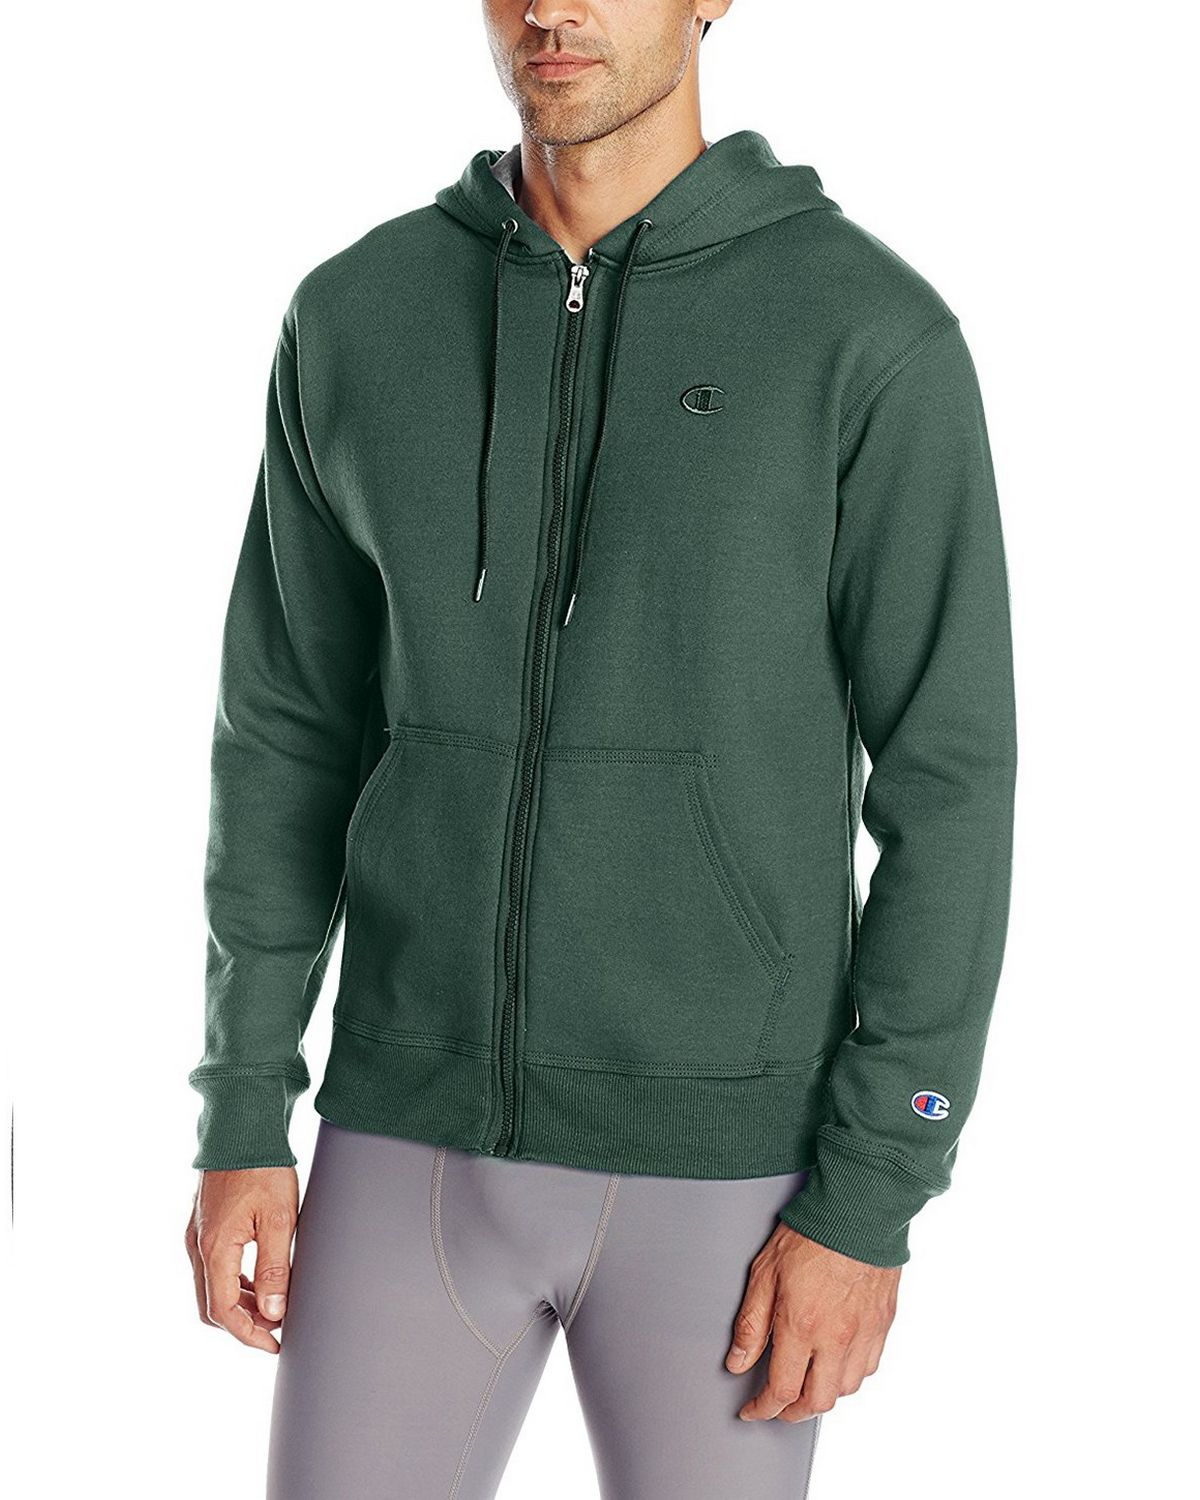 Champion S0891 Mens Fleece Full Zip Jacket - Dark Green - S S0891